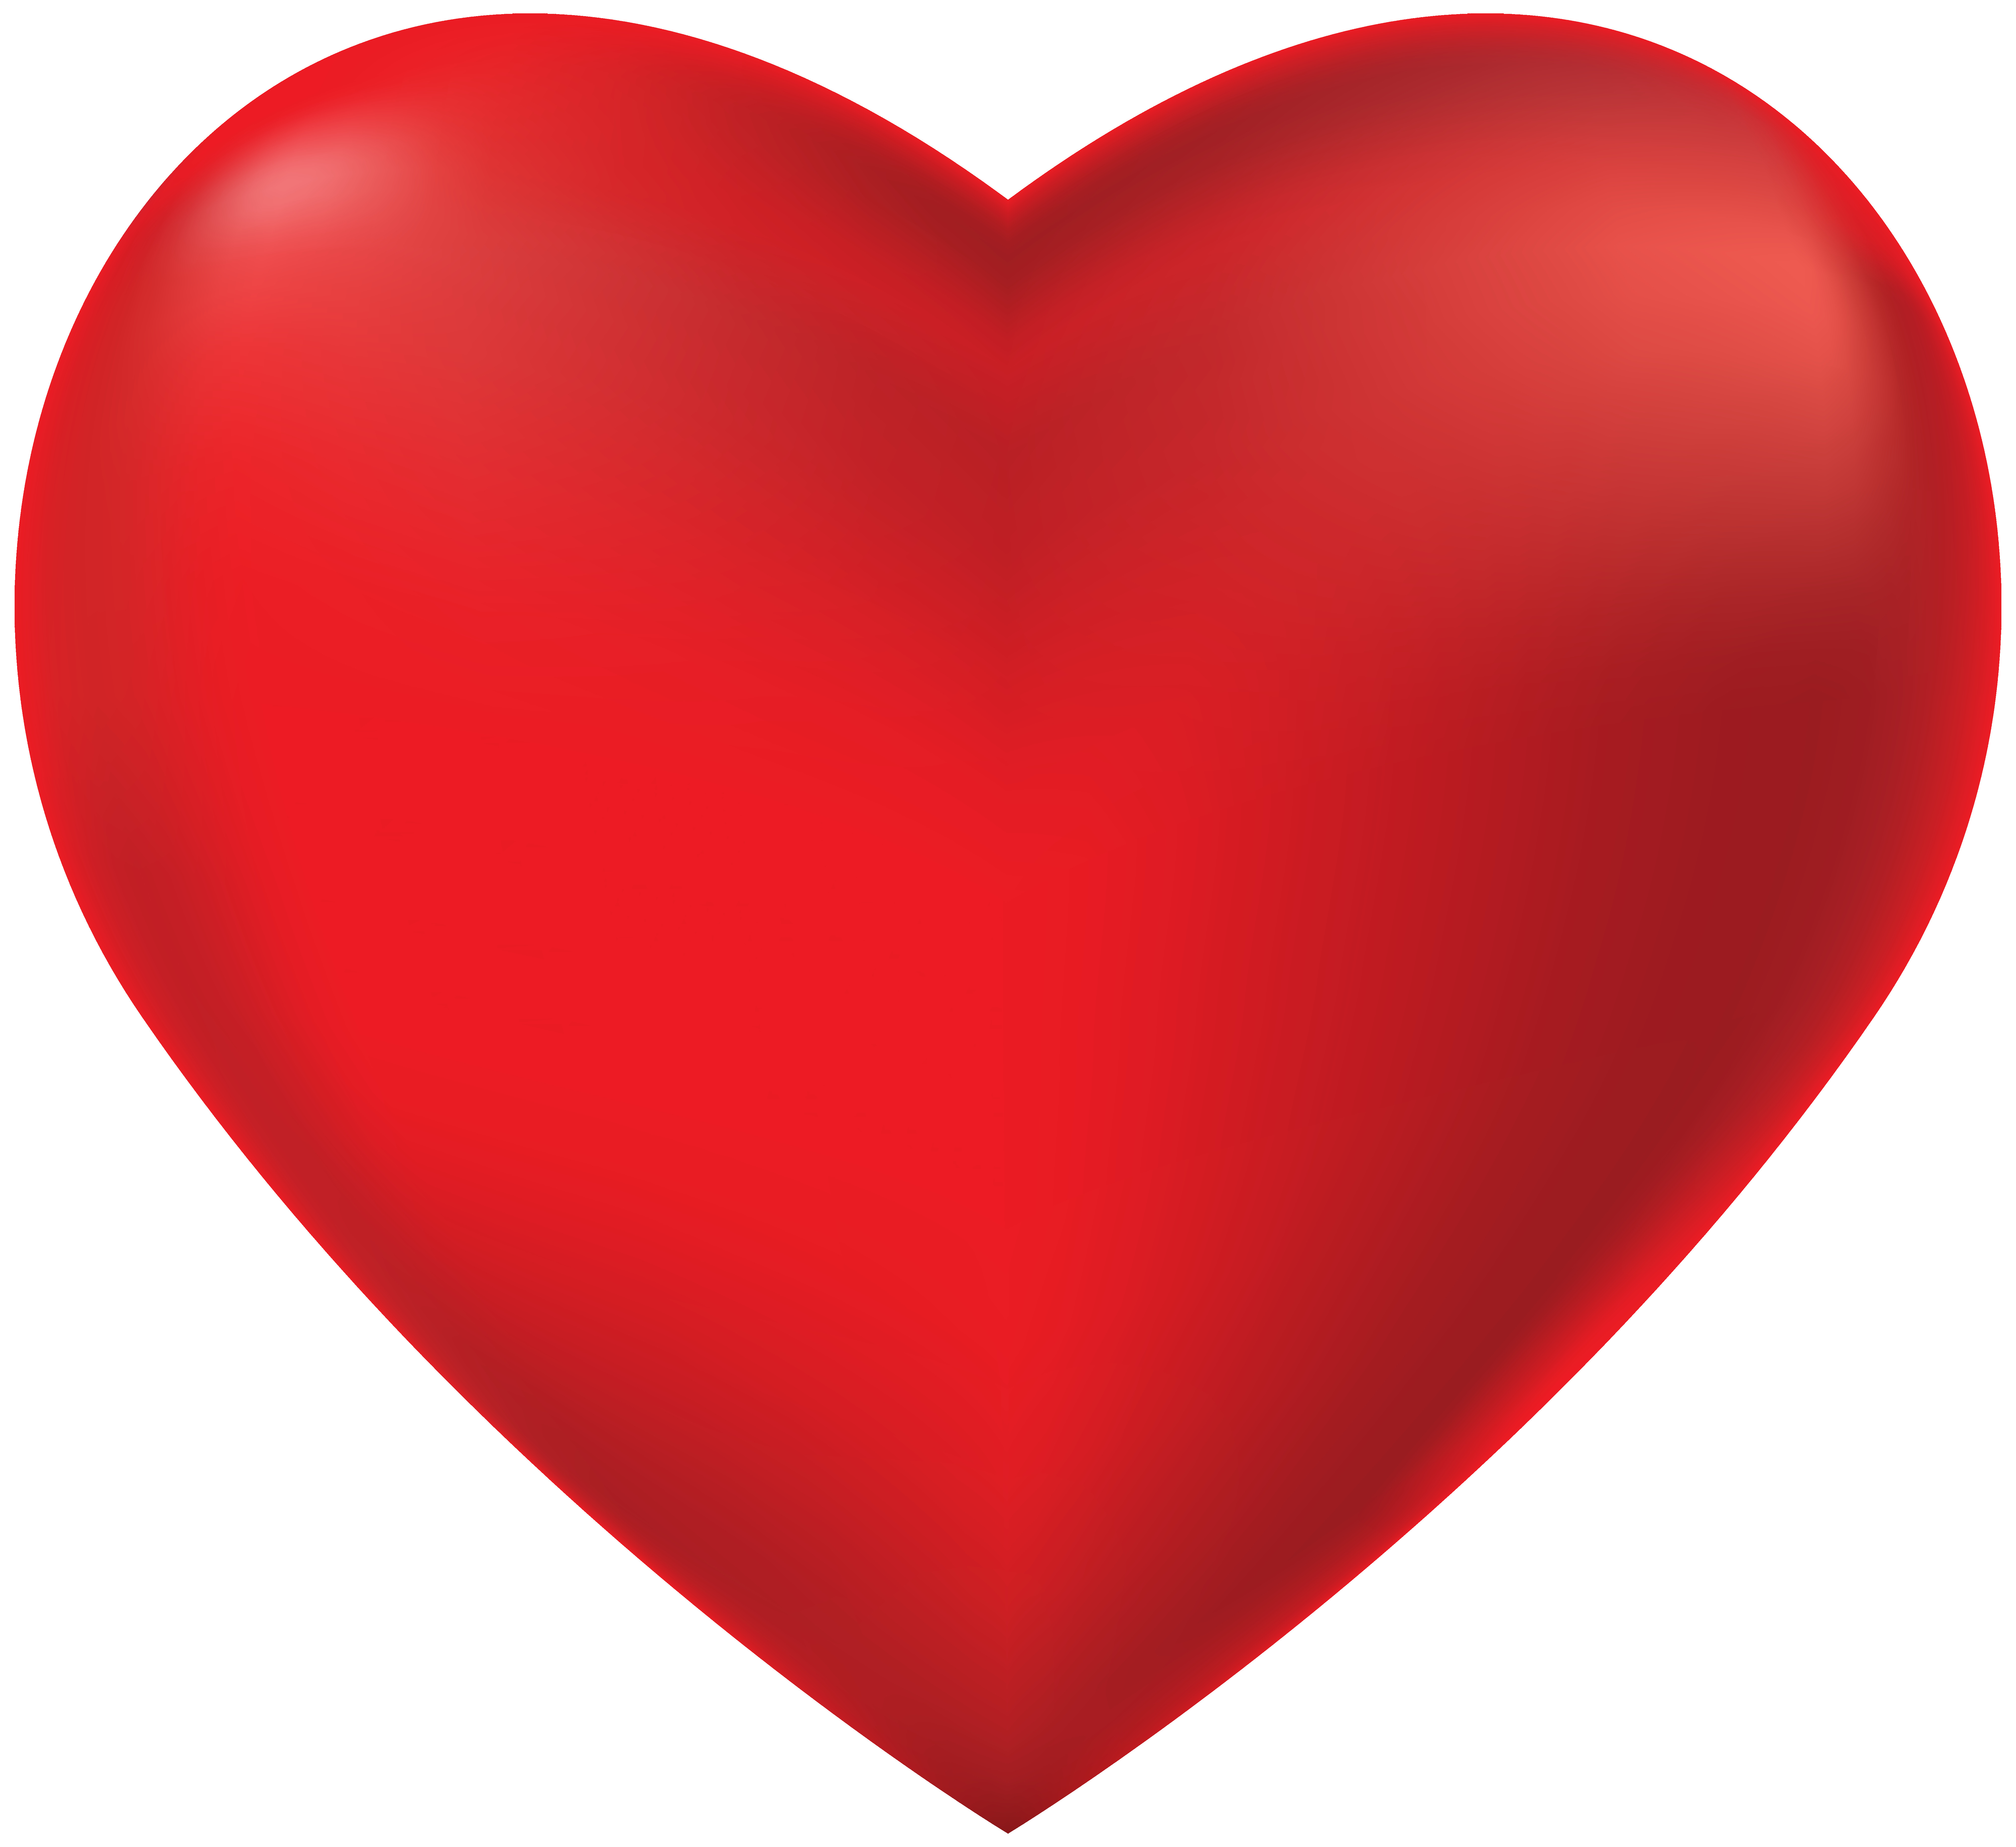 8000x7331 Red Heart Transparent Png Clip Art Gallery Yopriceville High